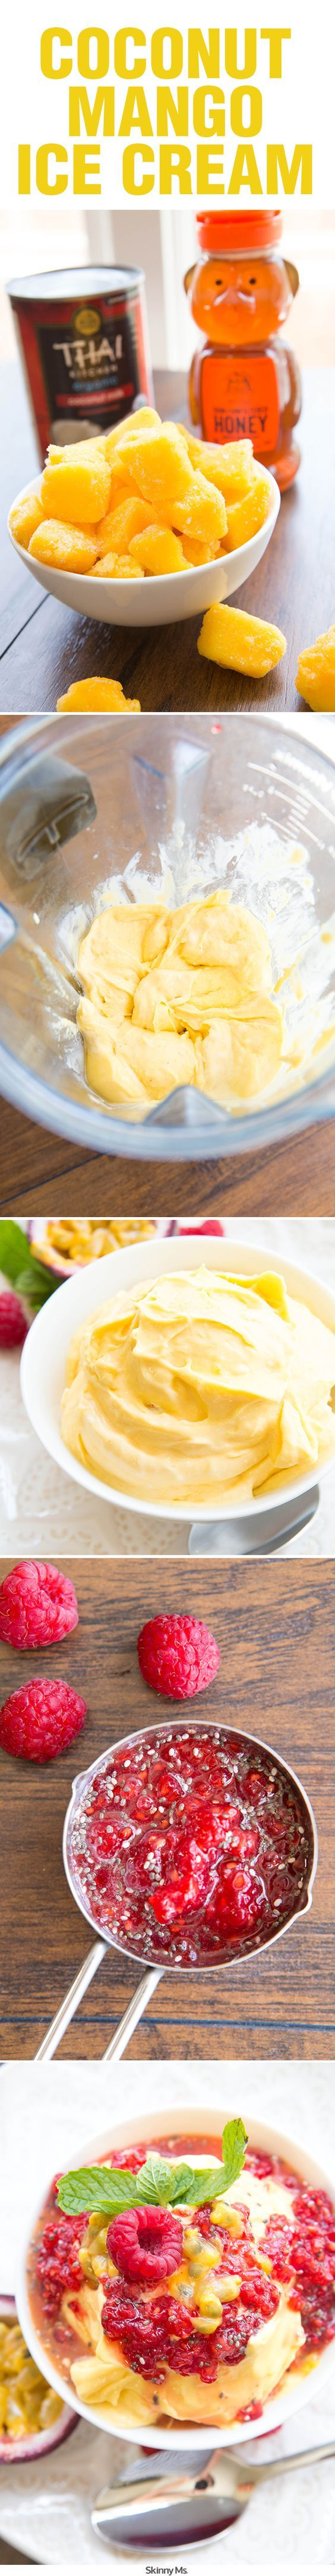 Make your own creamy  soft-serve style ice cream using just three ingredients: coconut milk  frozen fruit  and honey.Make your own creamy  soft-serve style ice cream using just three ingredients: coconut milk  frozen fruit  and honey.